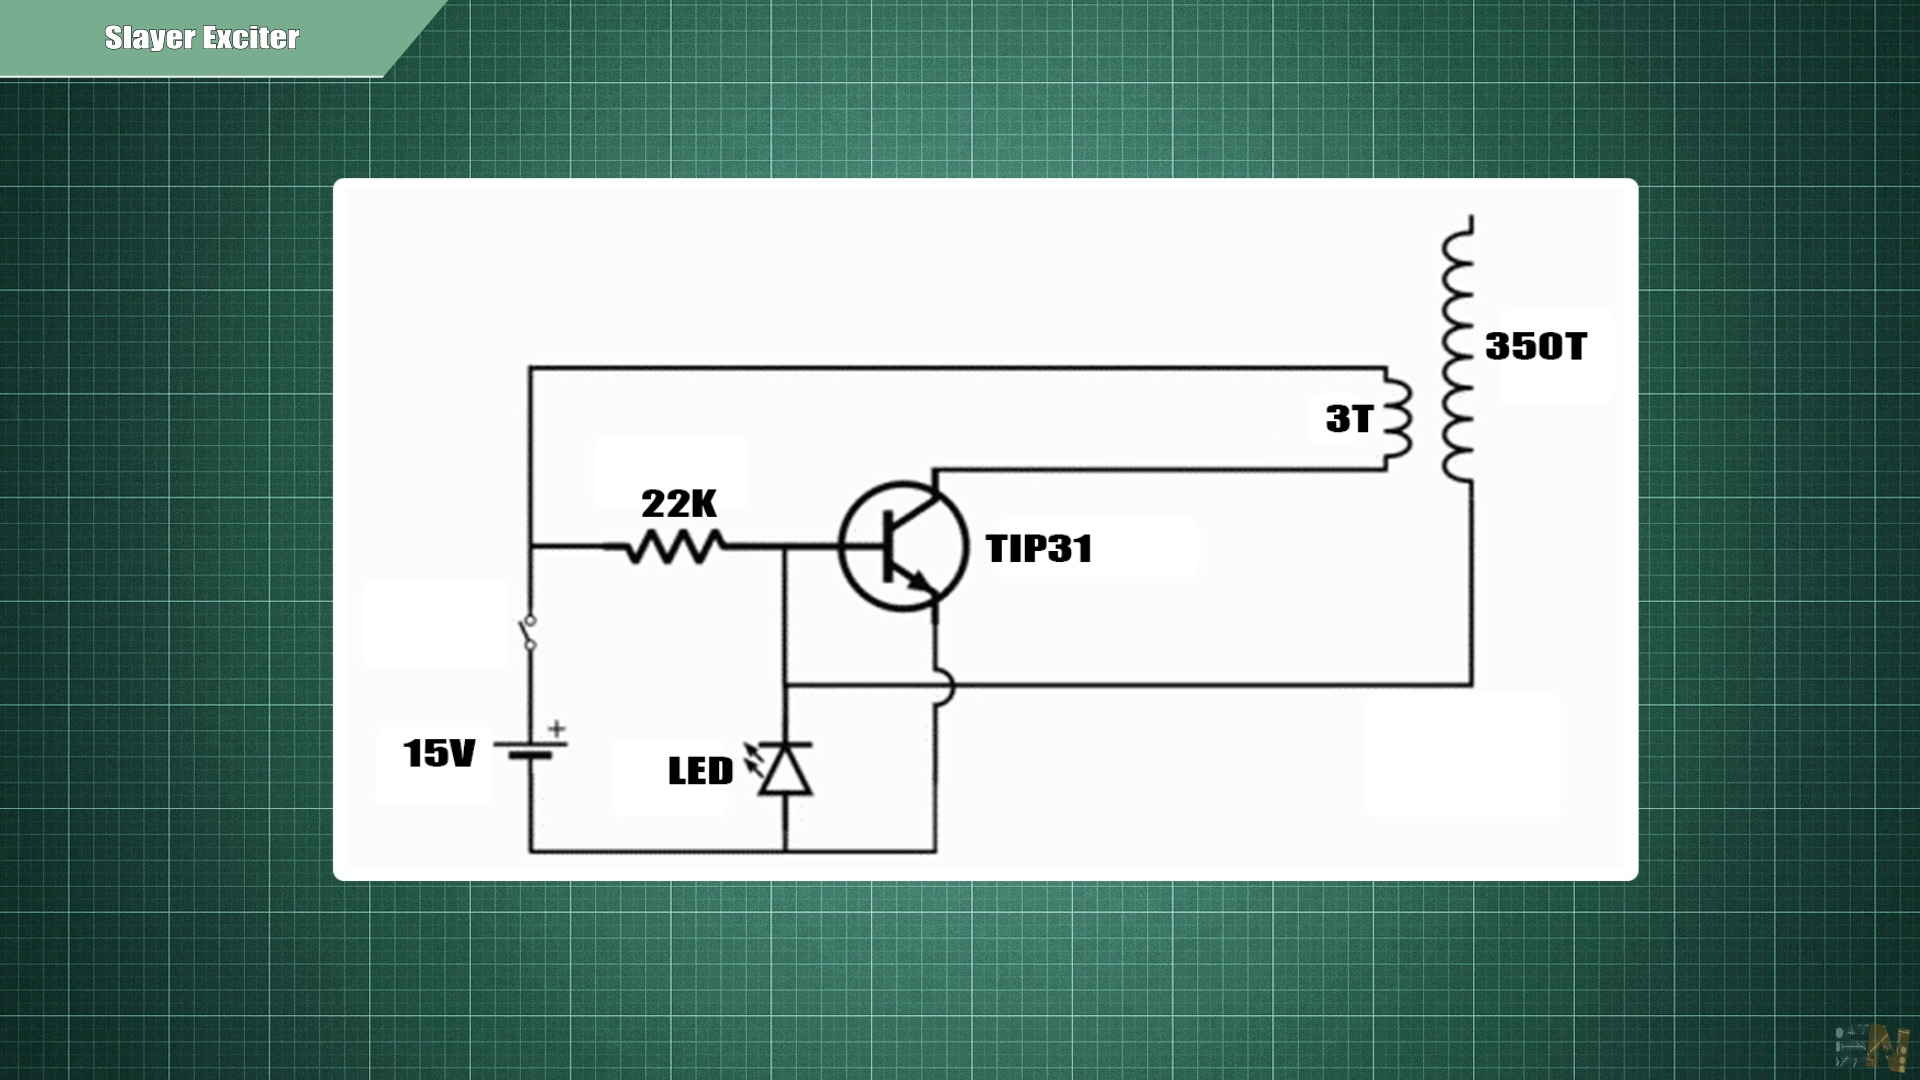 Tesla coil Slayer Exciter circuit schematic